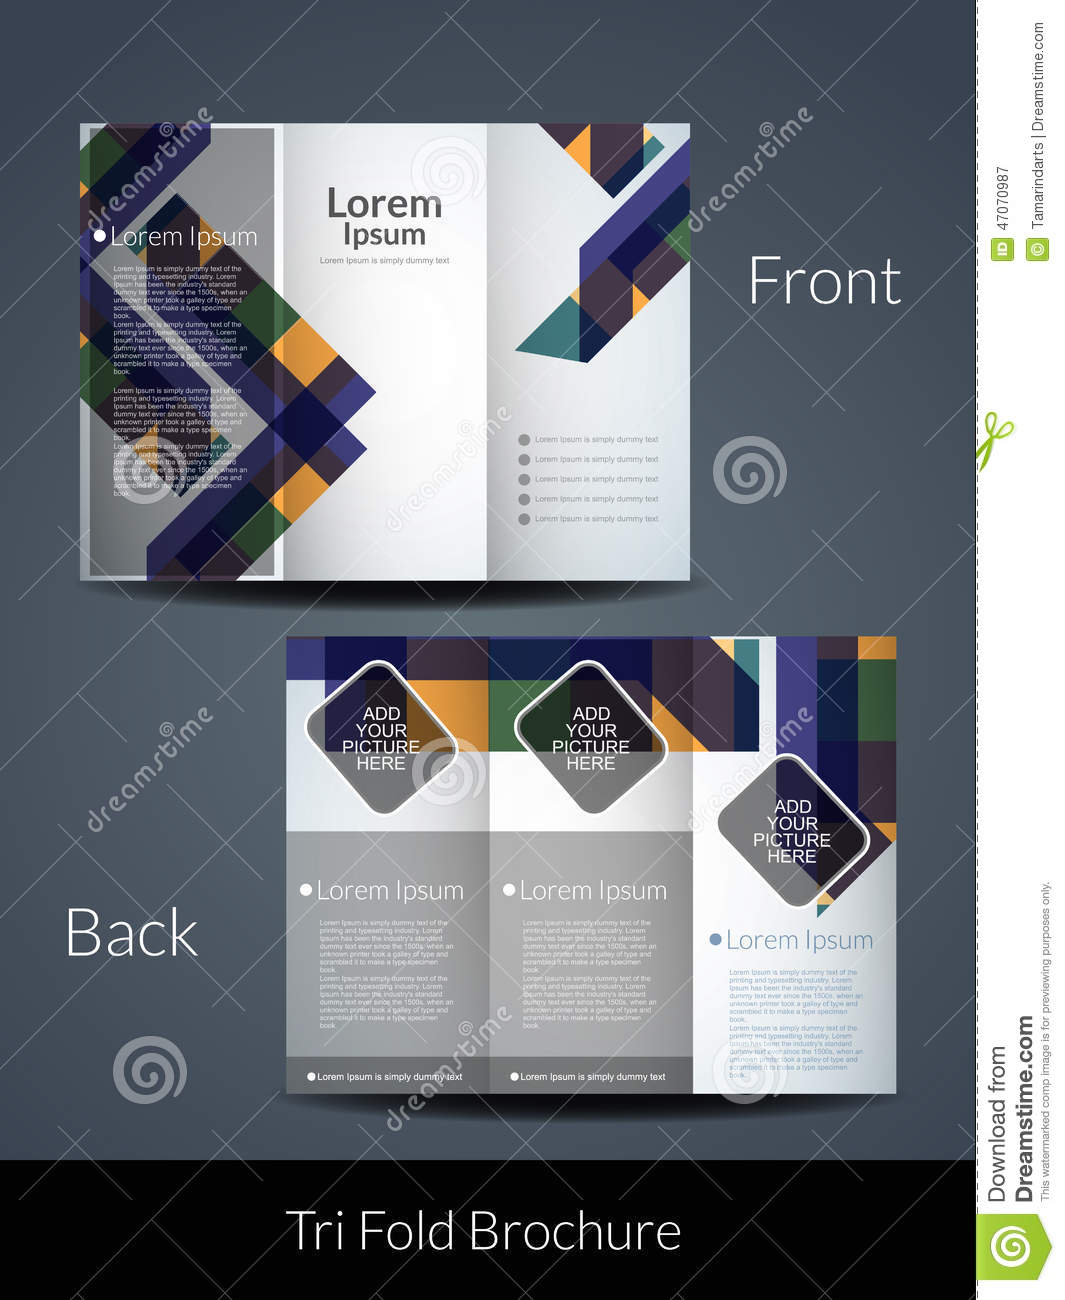 Tri Fold Brochure Design Template. Stock Vector - Image: 47070987